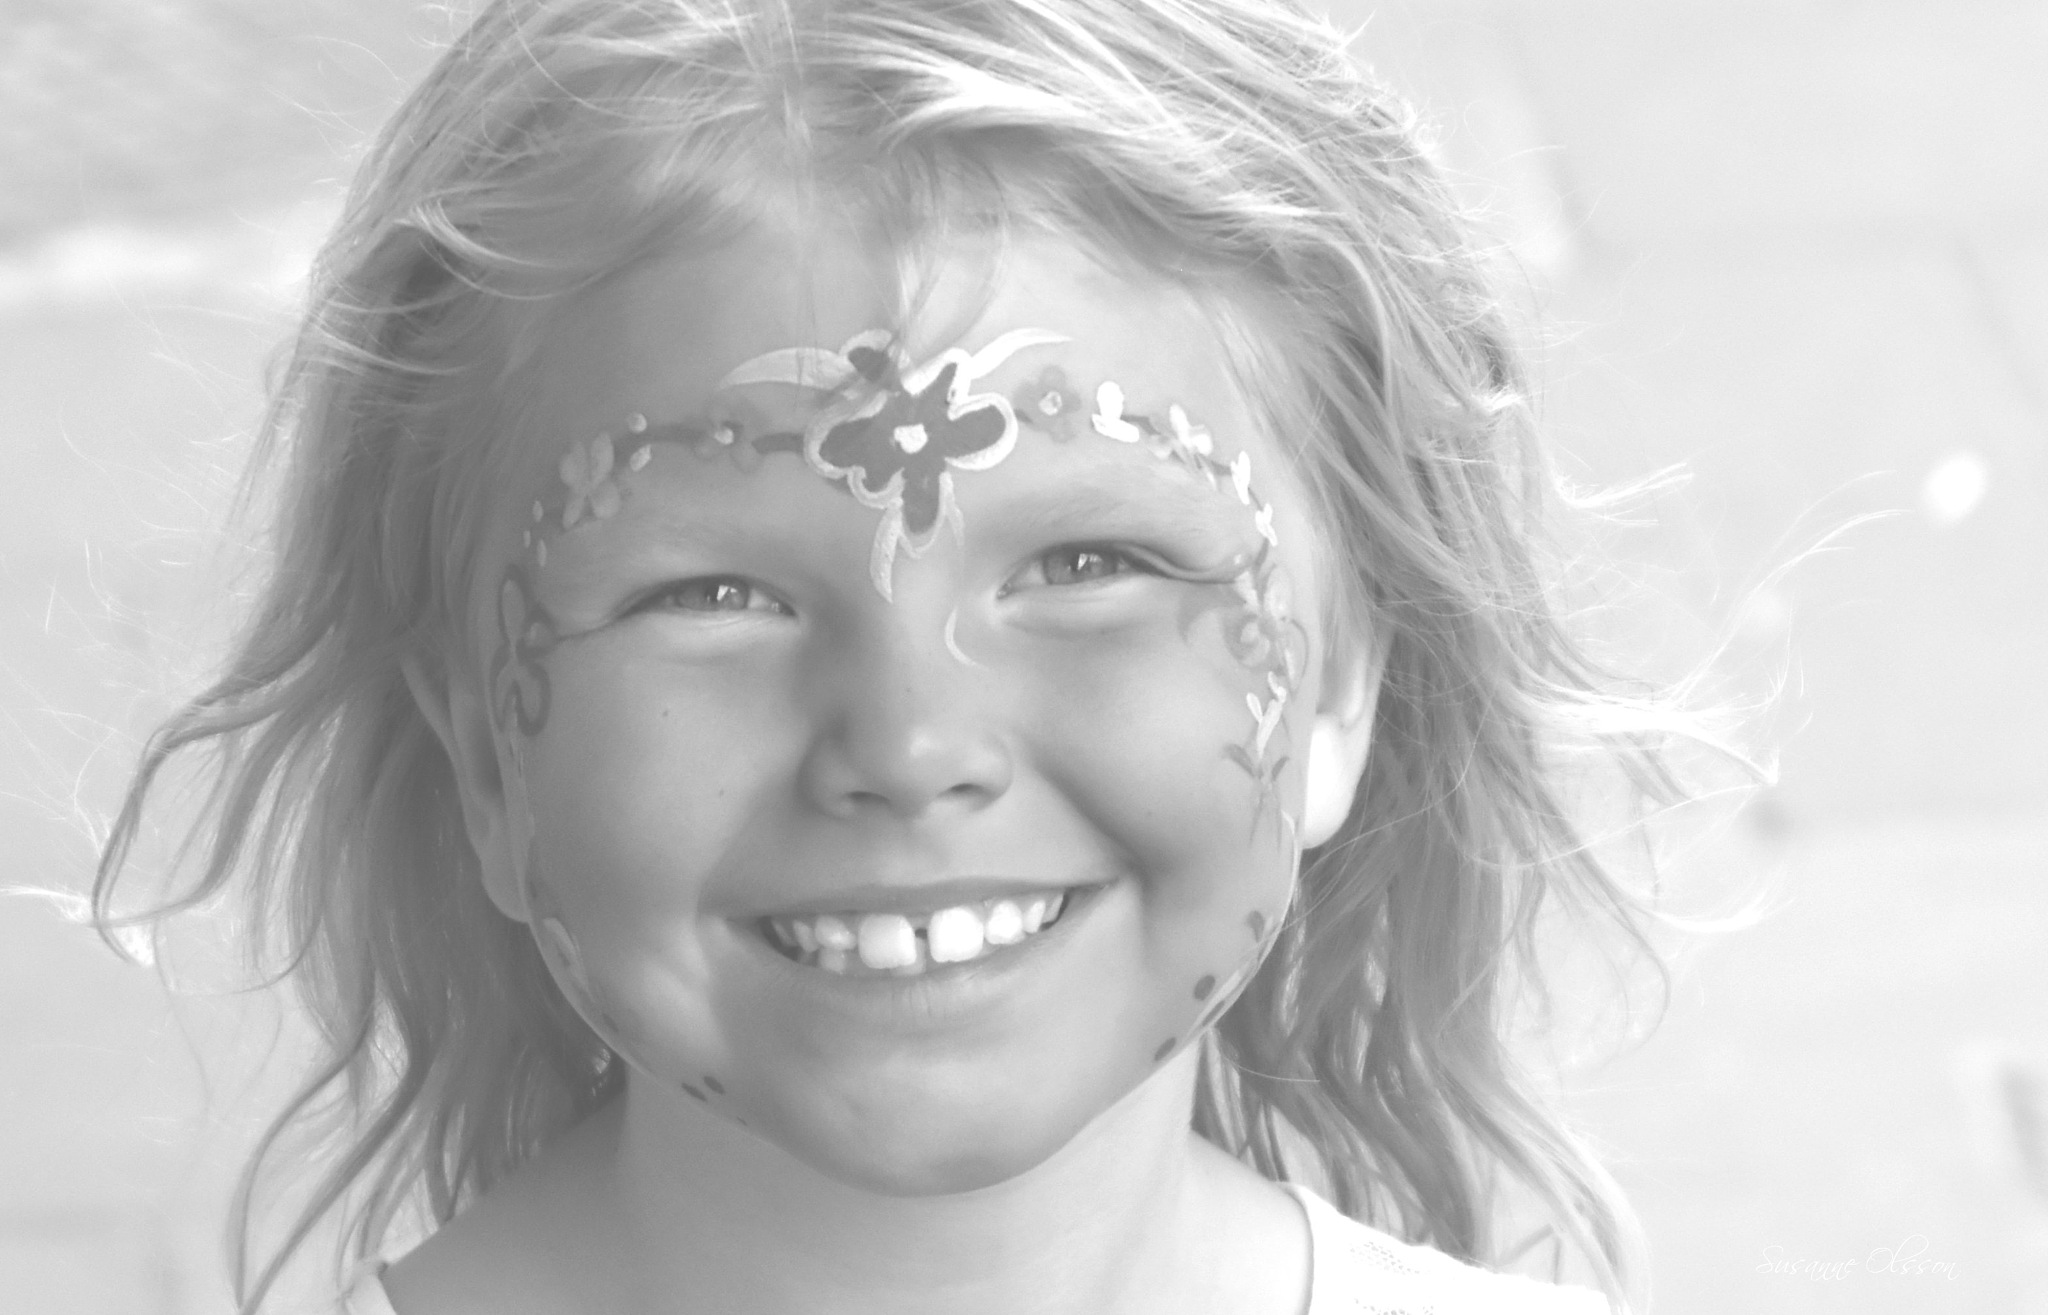 Face painted girl by Susanne Olsson